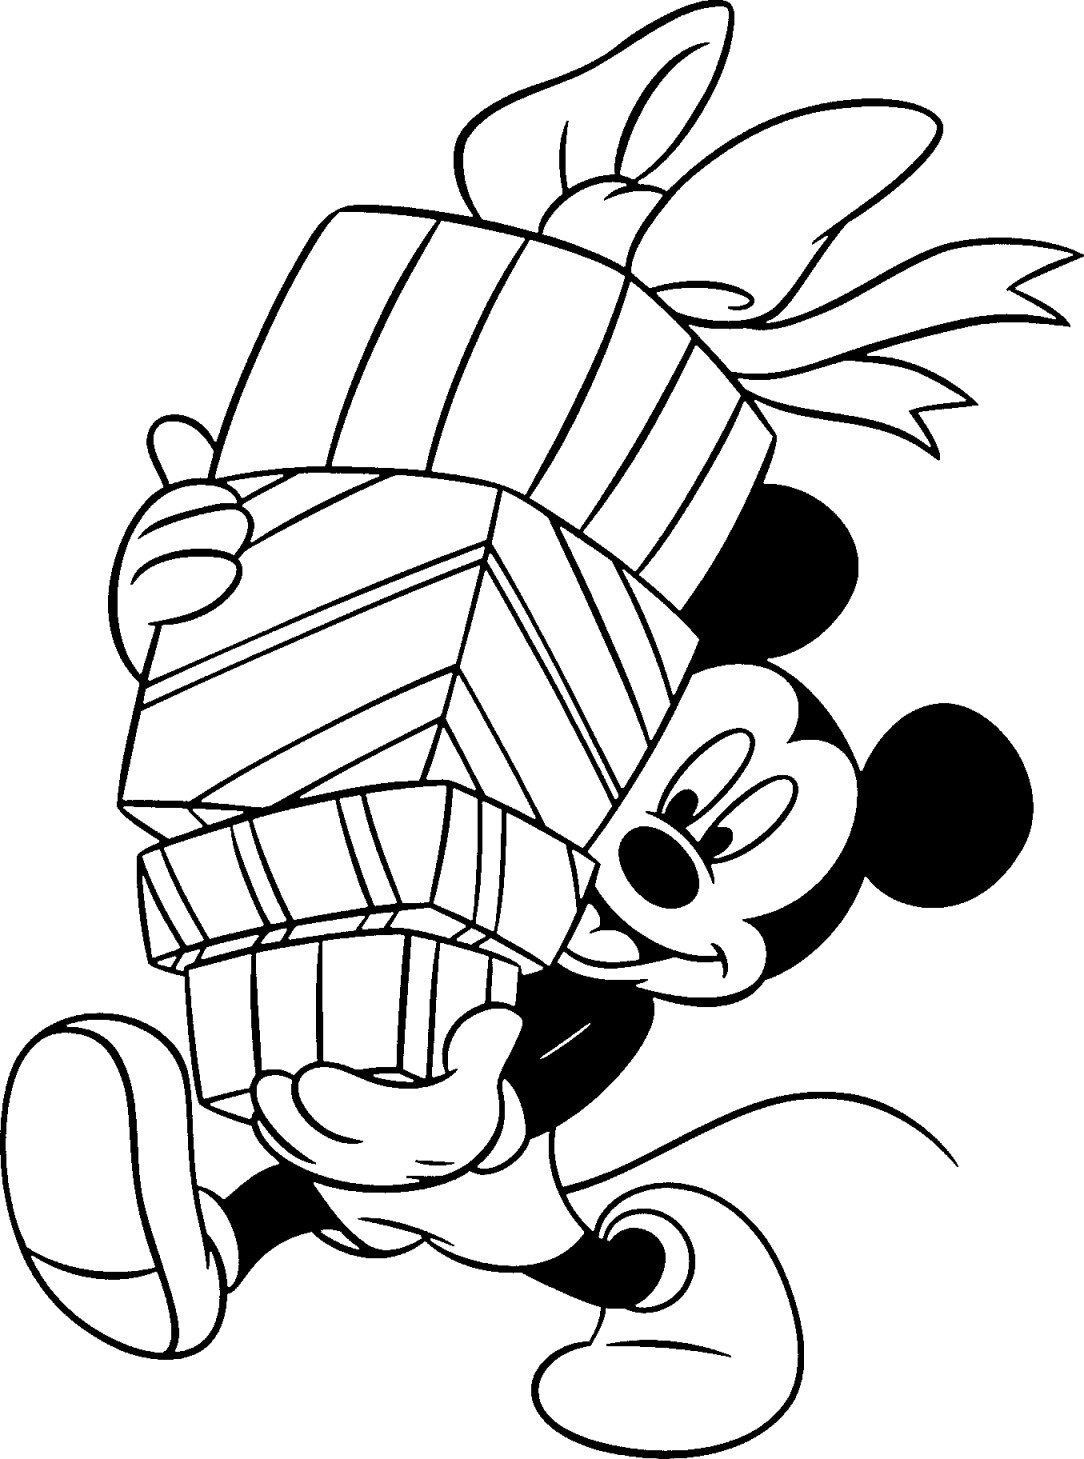 Coloring Pages Mickey Mouse : Mickey mouse coloring pages wallpapers photos hq